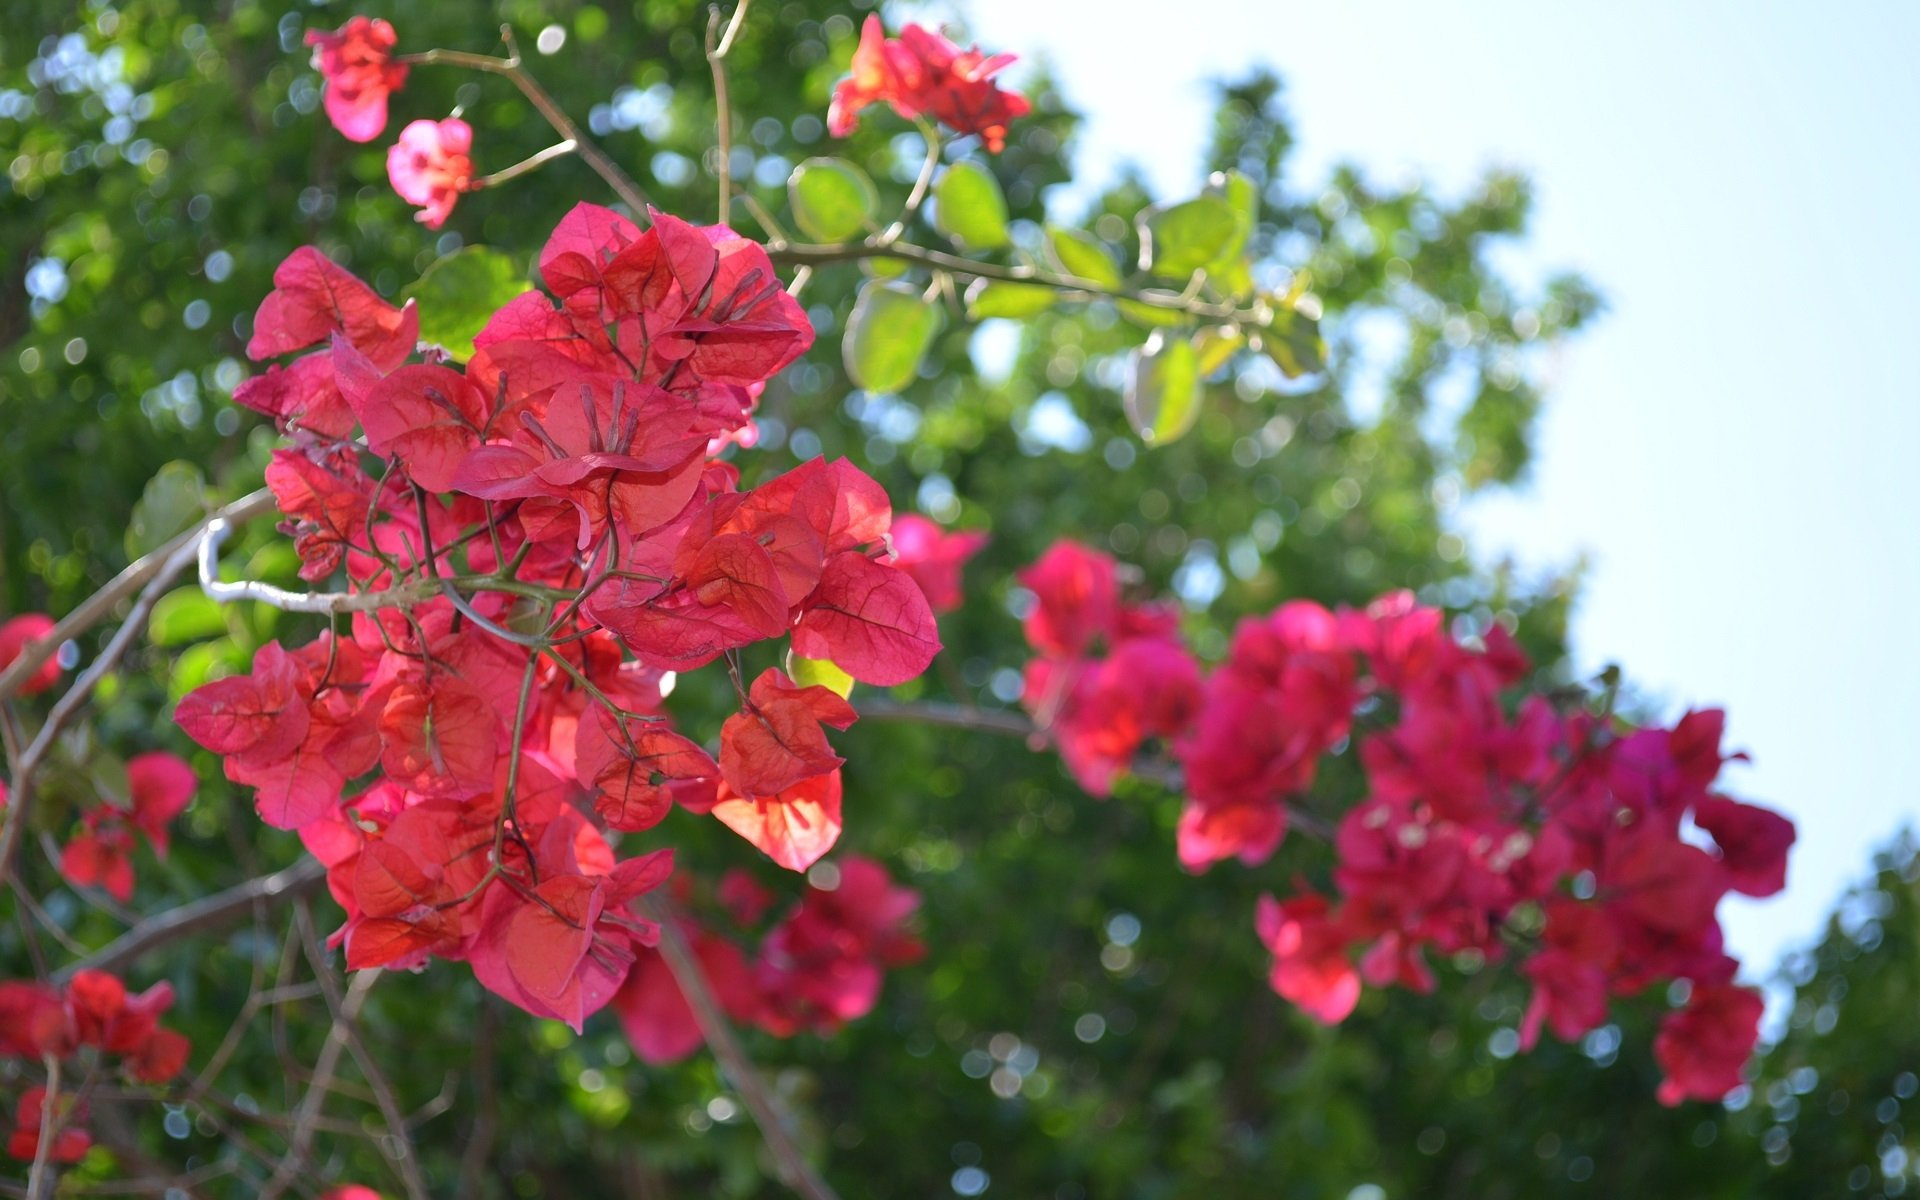 Bougainvillea Wallpaper A Beautiful Bougainvillea Tree Bougainvillea Glabra Hd Wallpaper